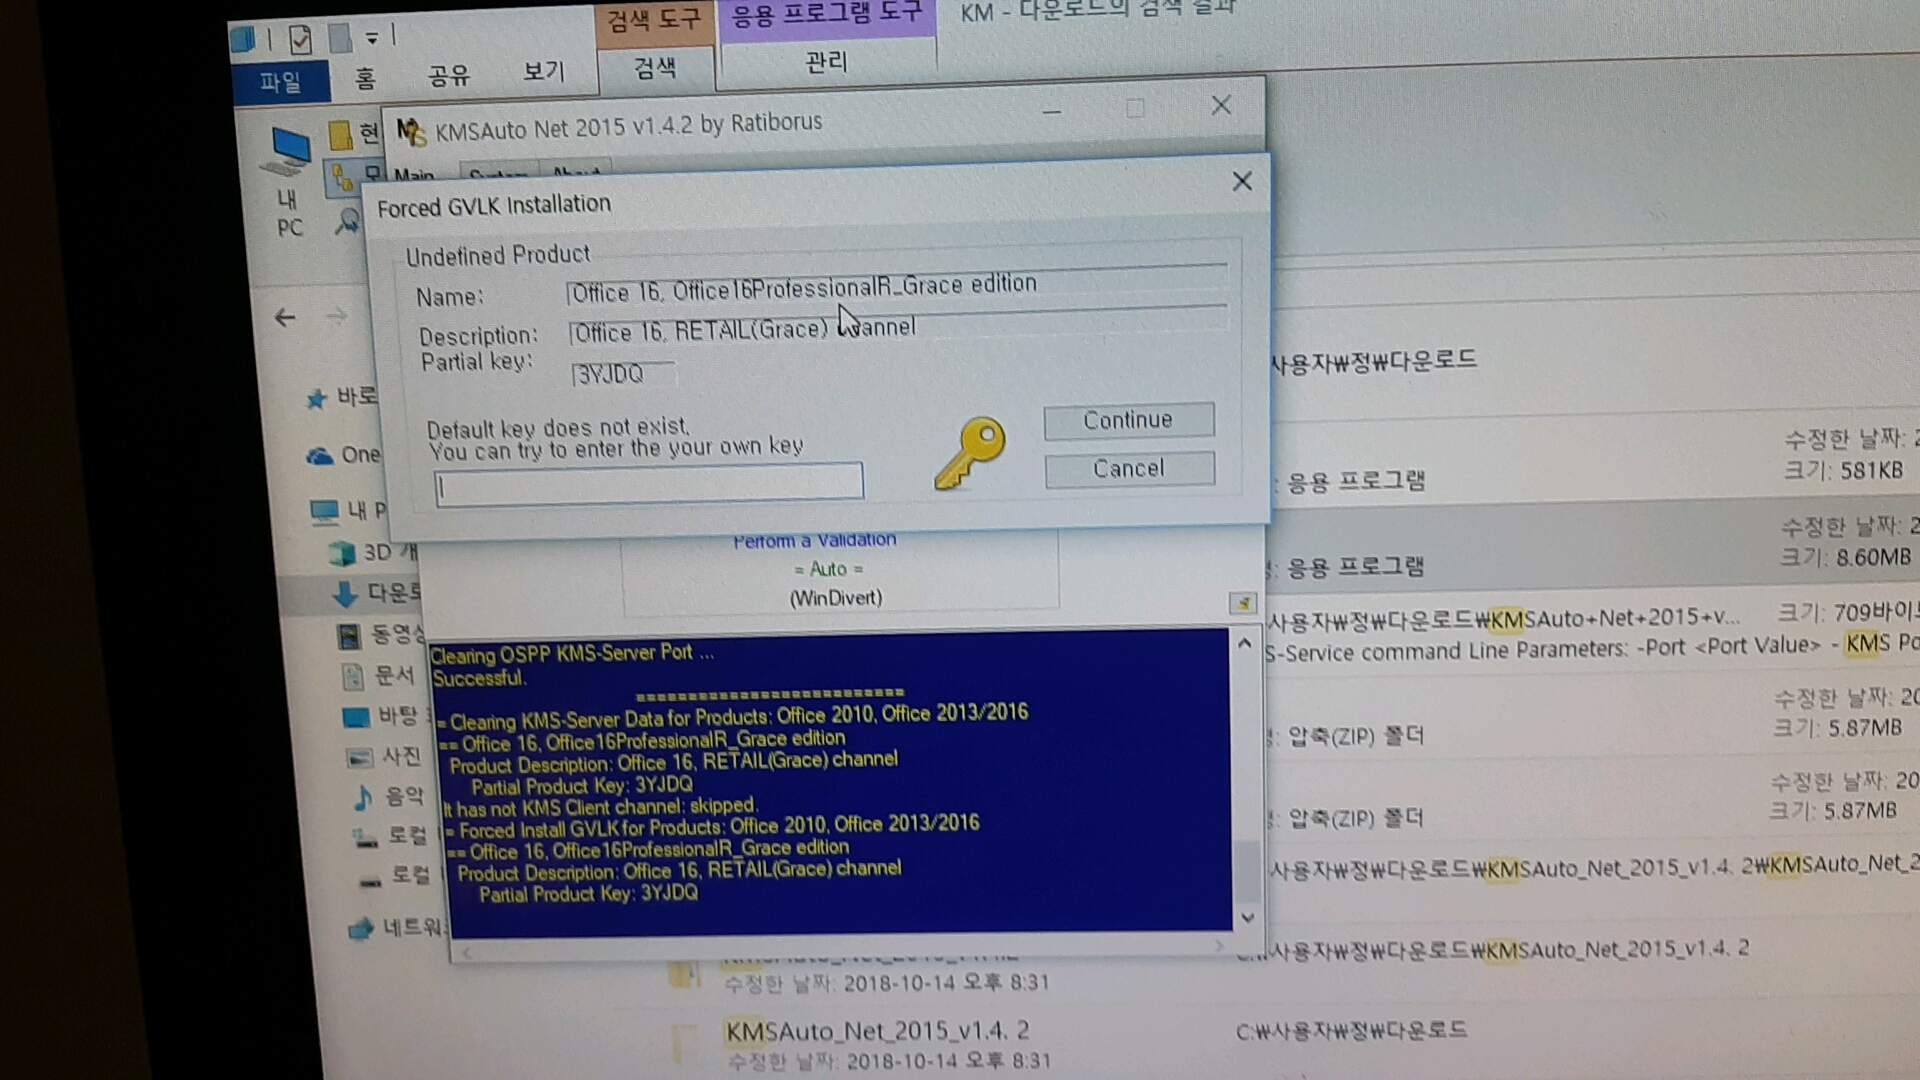 Forced Gvlk Installation Default Key Does Not Exist